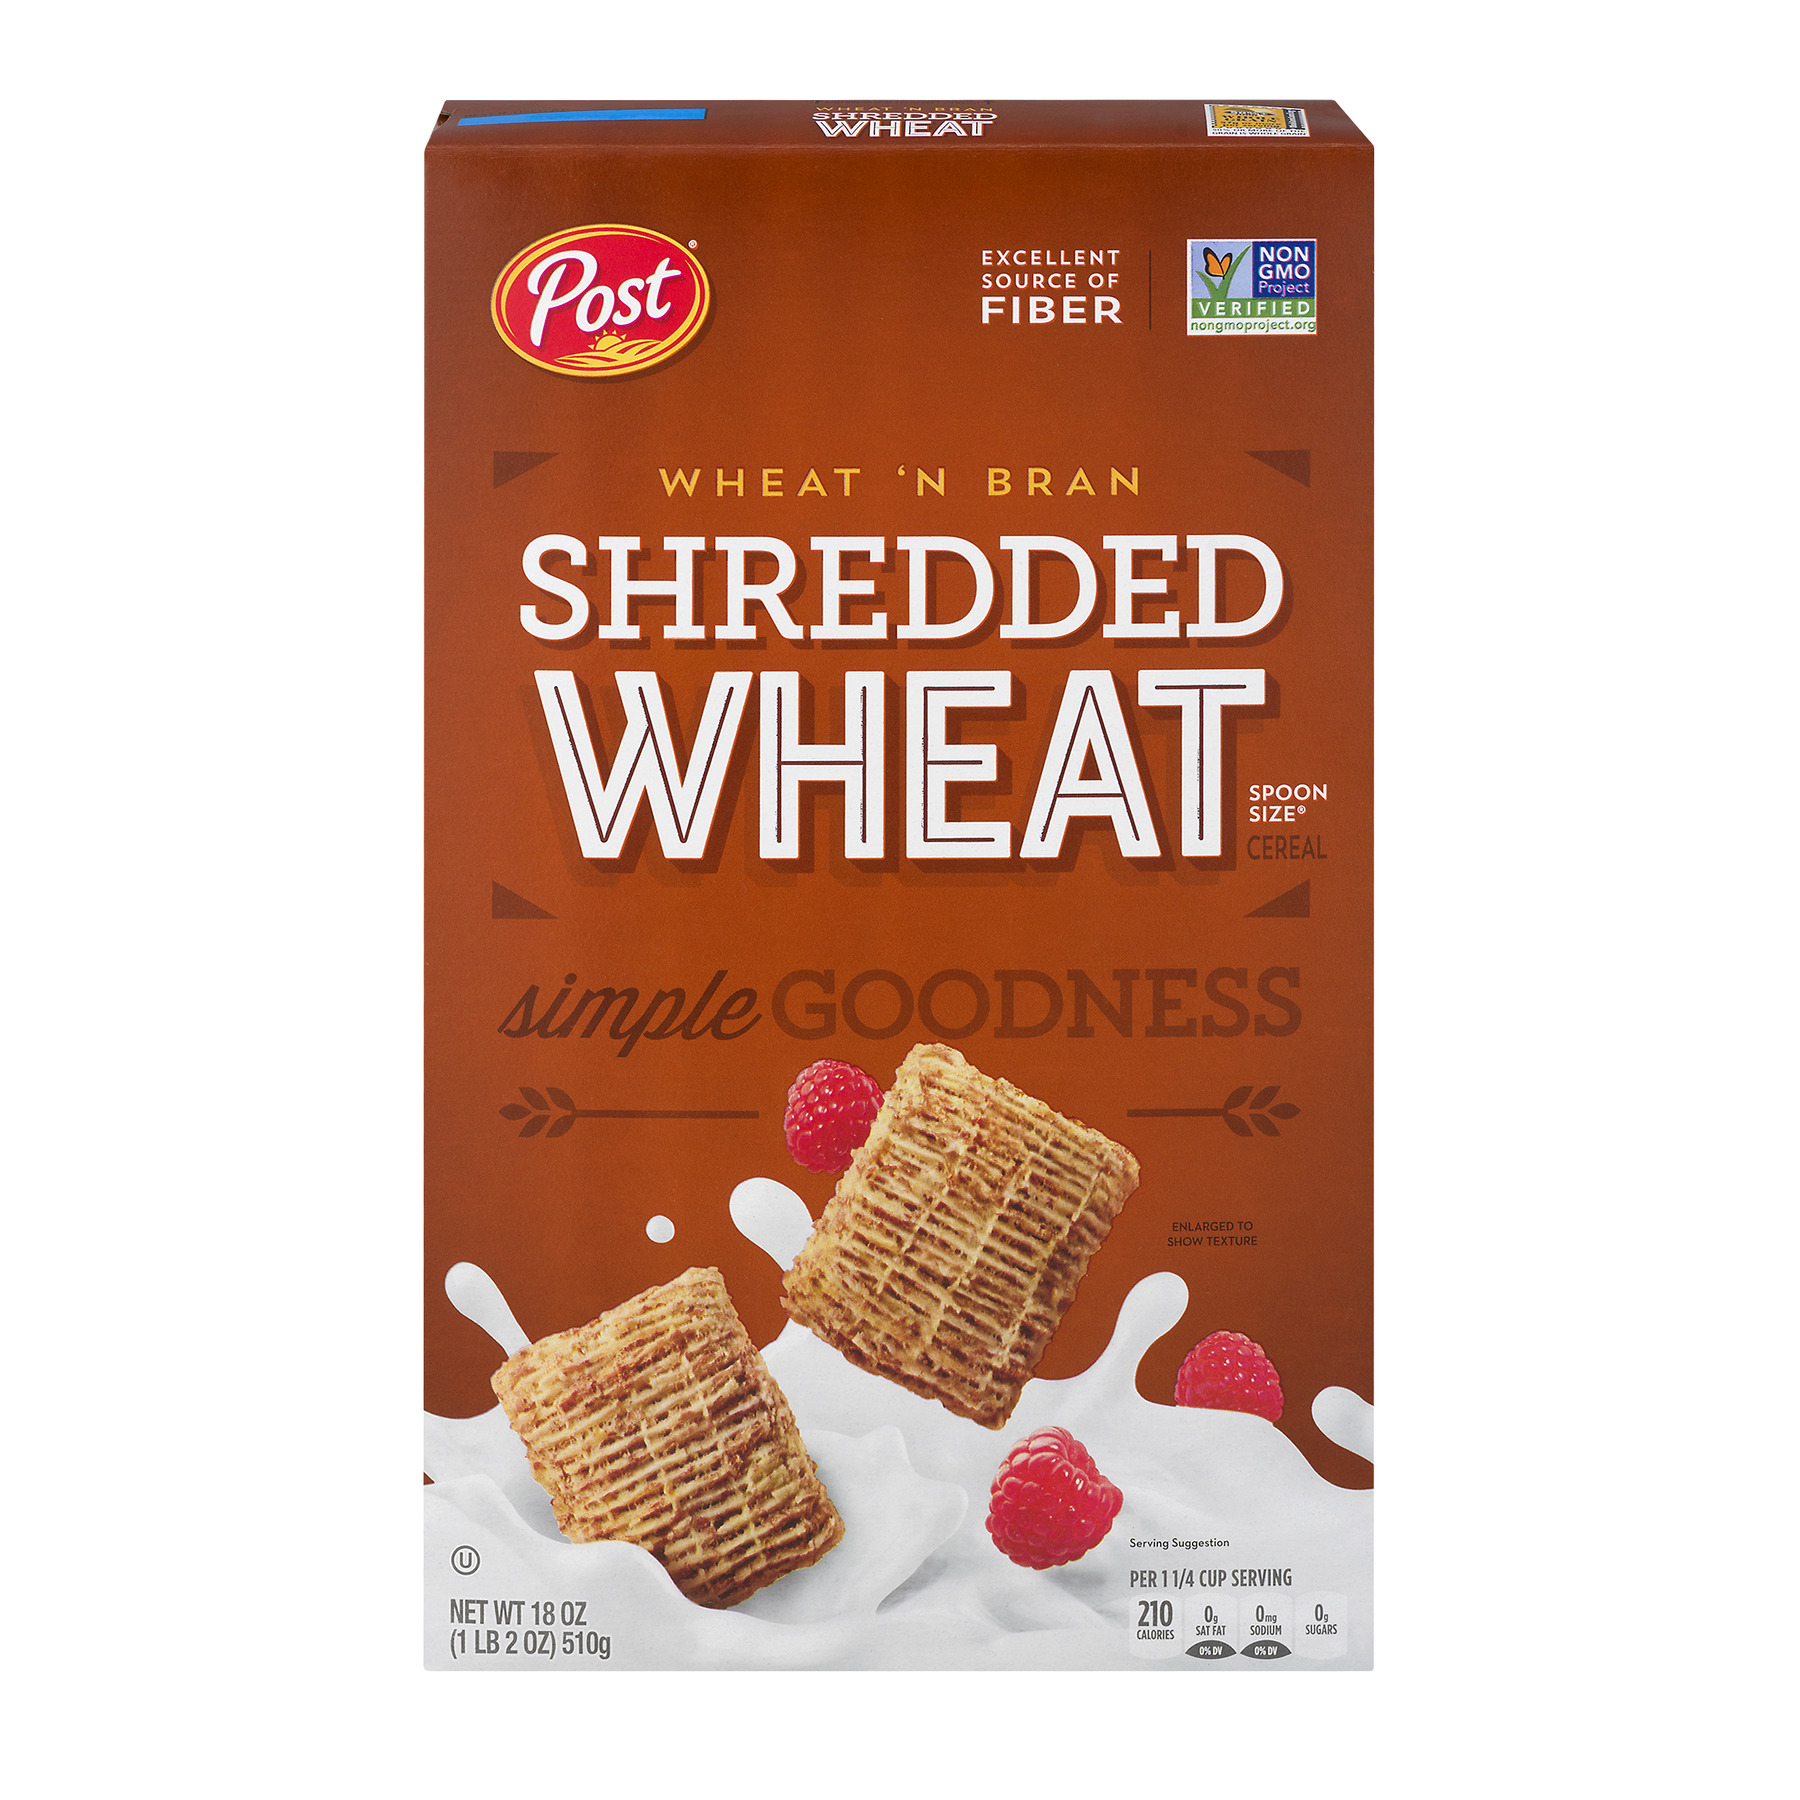 Post Shredded Wheat Spoon Size Wheat'n Bran Cereal 18 oz Box